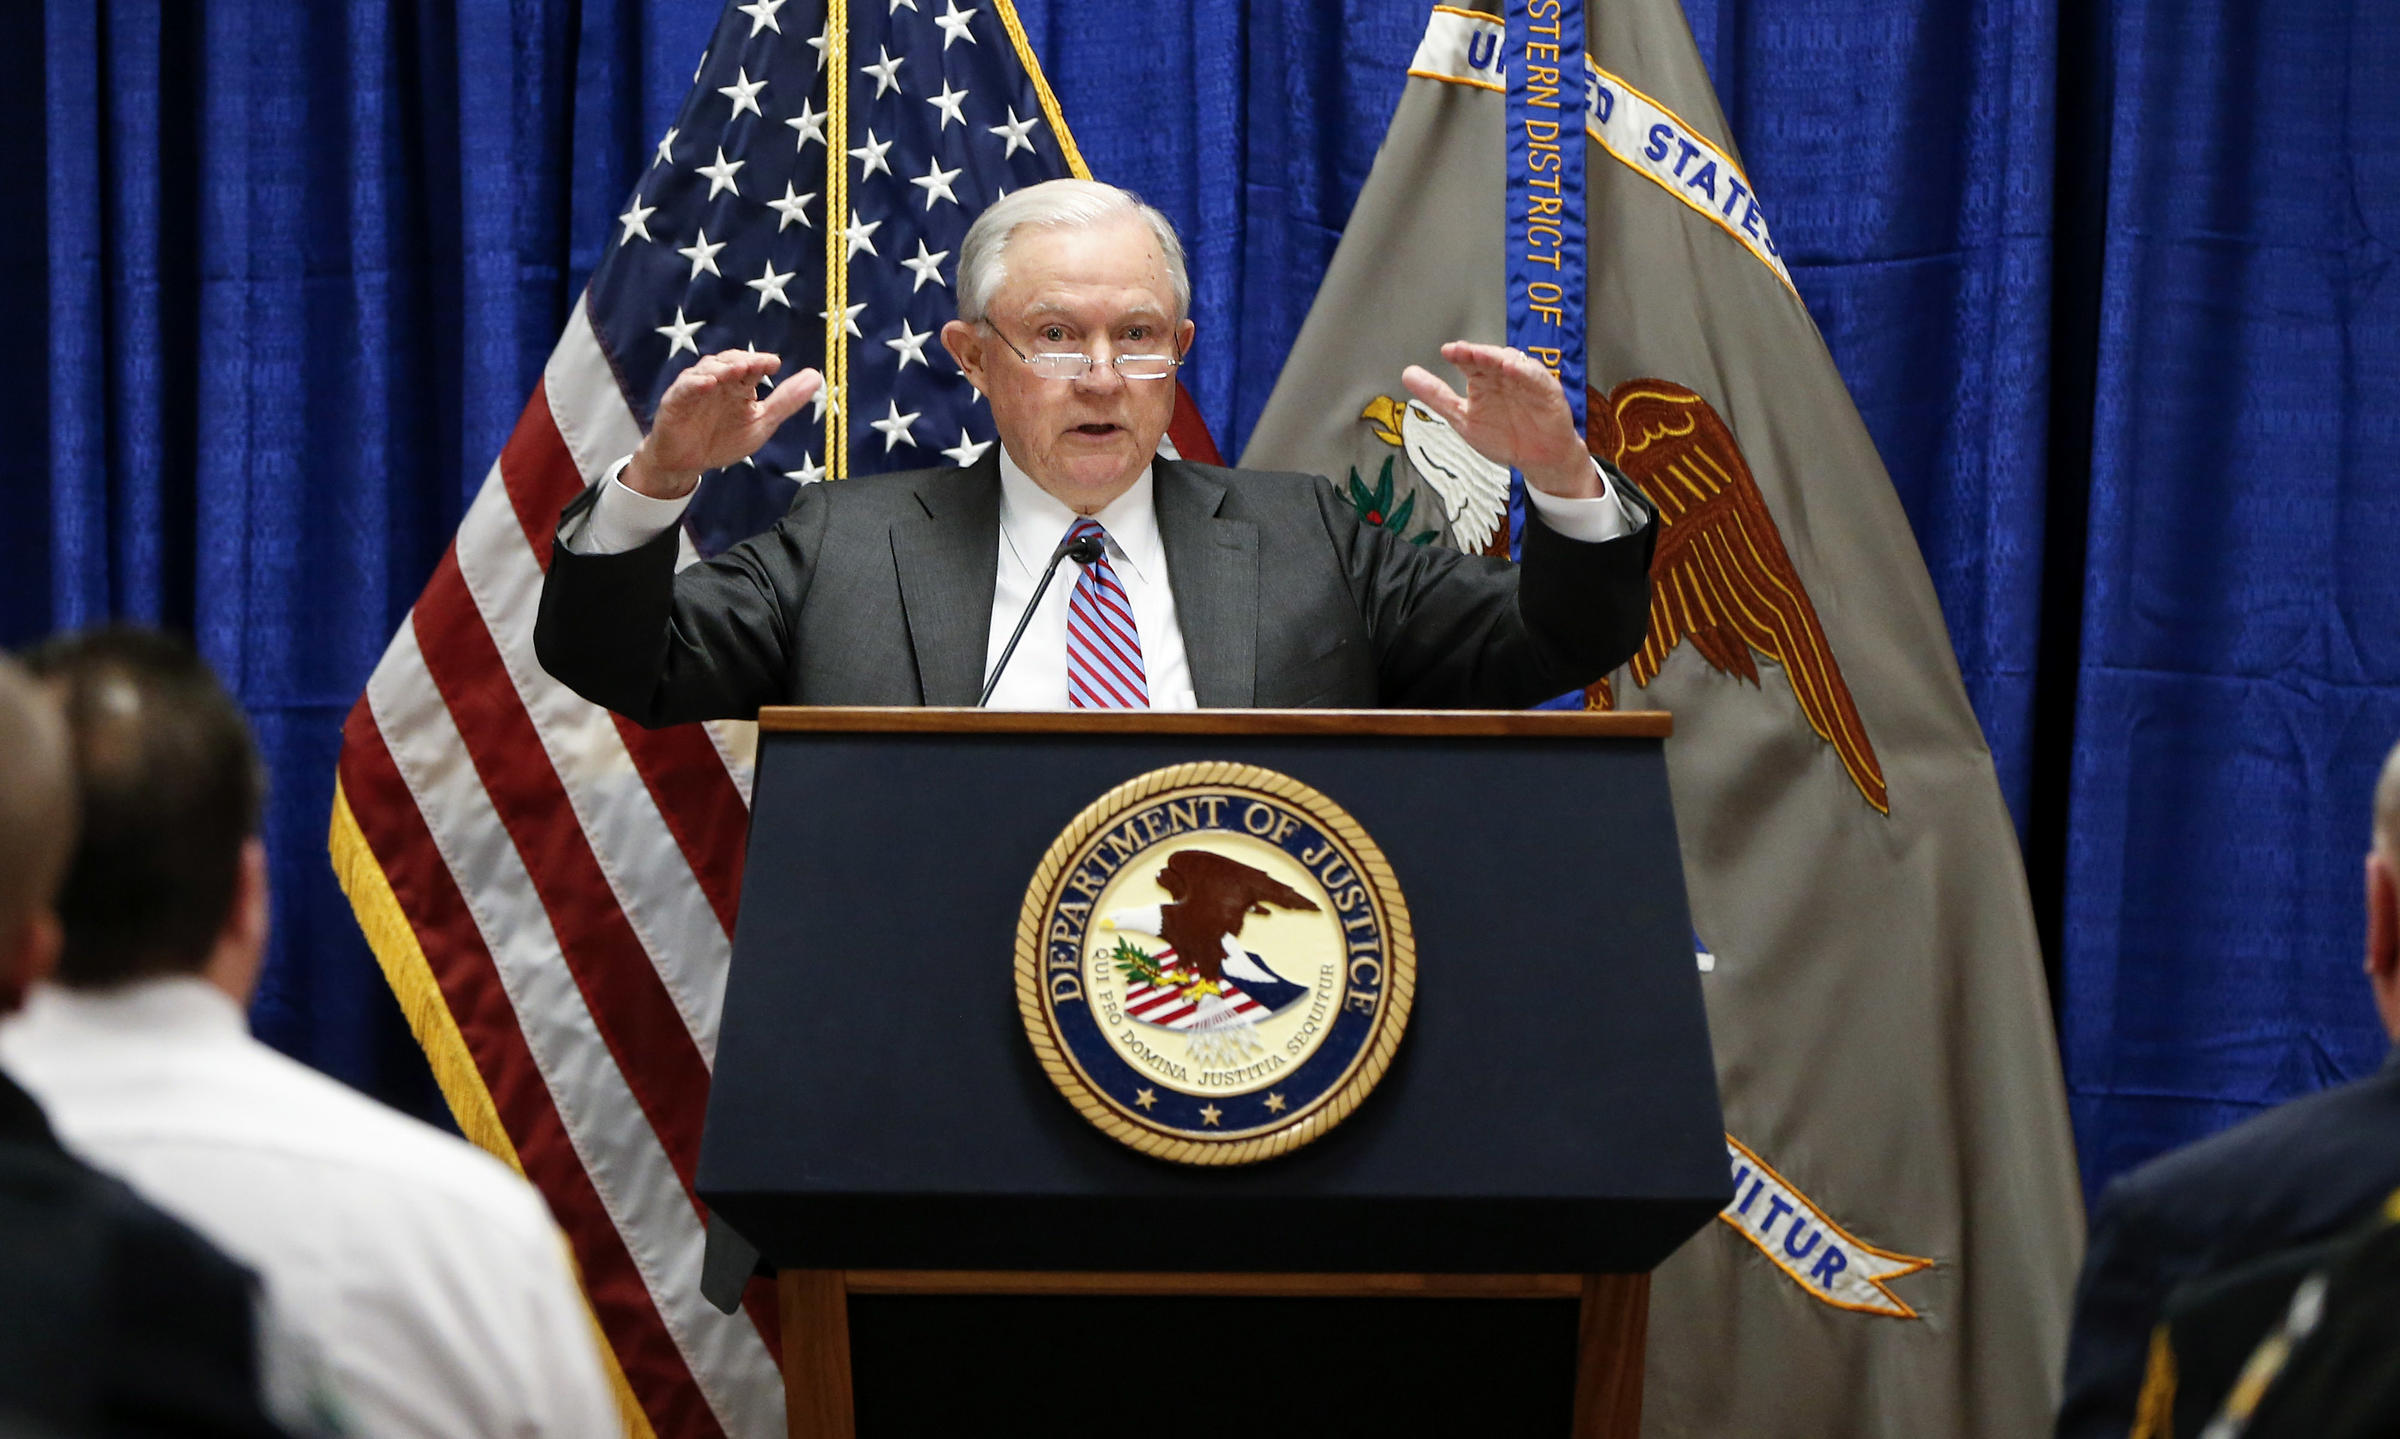 AG Sessions in Pittsburgh launching fight against online opioid sales